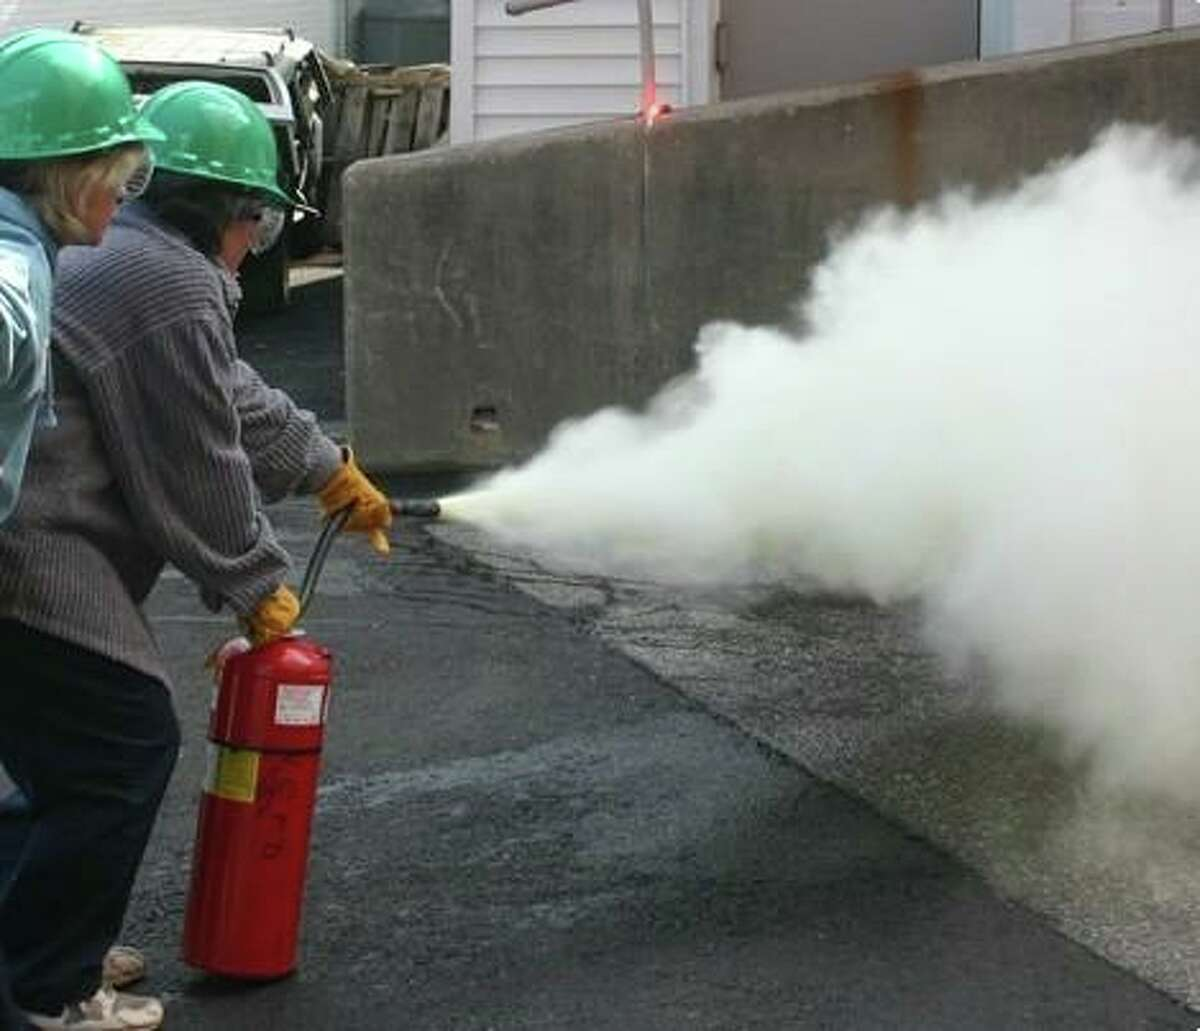 How to handle a fire extinguisher is one of the tools that participants in the New Canaan Community Emergency Response Team's. (CERT), training course will learn. A transformer fire on Main Street in New Canaan is closing part of the street at Main and Elm streets, and South Avenue, and Elm Street, late Wednesday, August 5, 2020. Elm is also closed from Main to South.